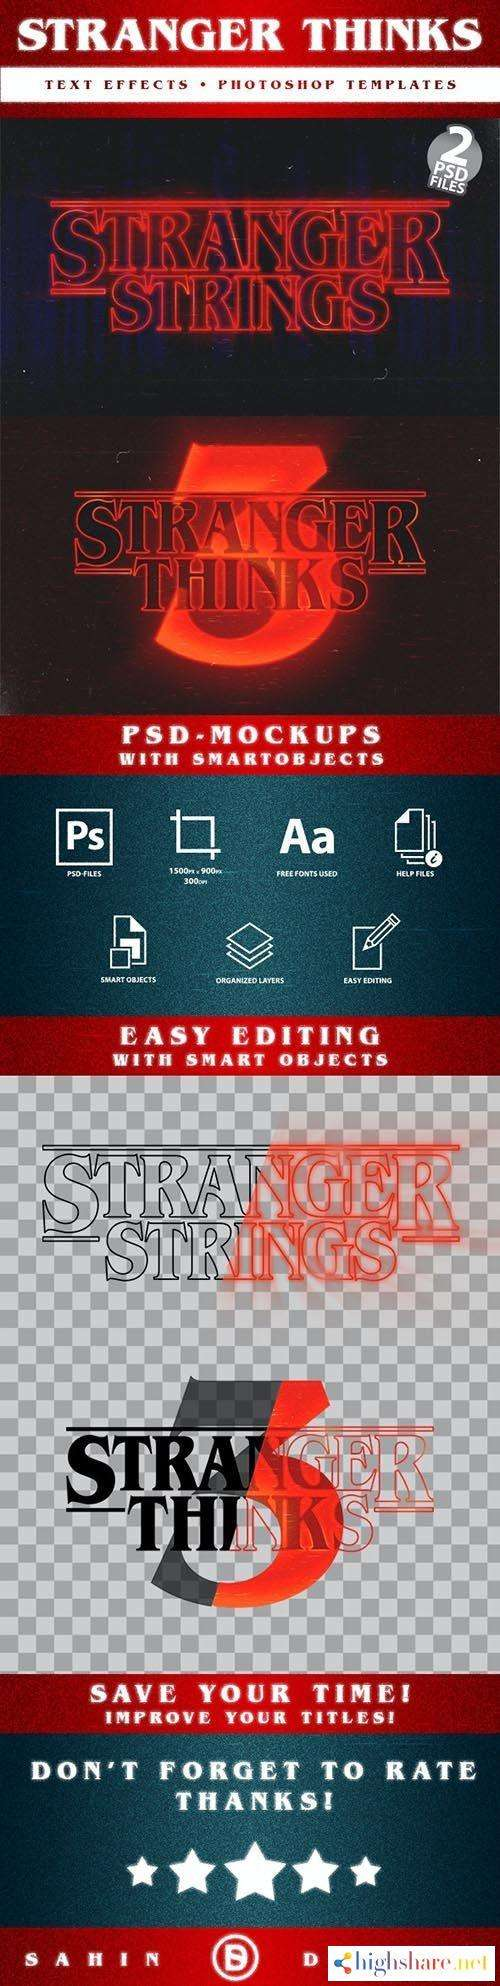 graphicriver stranger thinks text effects mockups template package 27600427 5f49c163c79f0 - GraphicRiver - Stranger Thinks | Text-Effects/Mockups | Template-Package 27600427